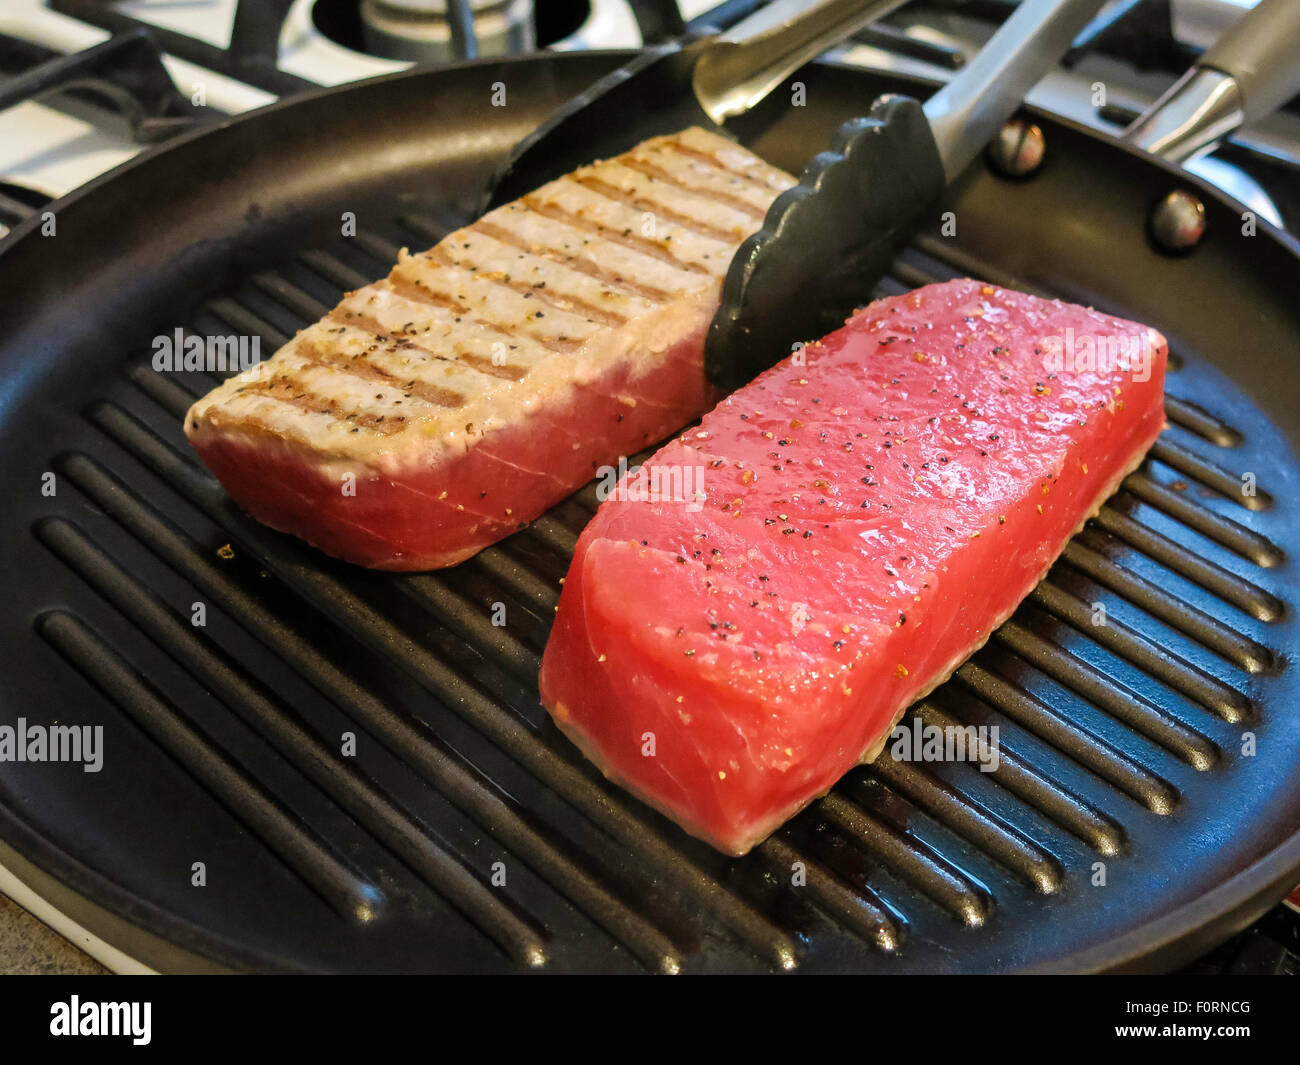 Sushi-Grade Raw Tuna Steaks Cooking on Stove Top Grill Pan Stock ...